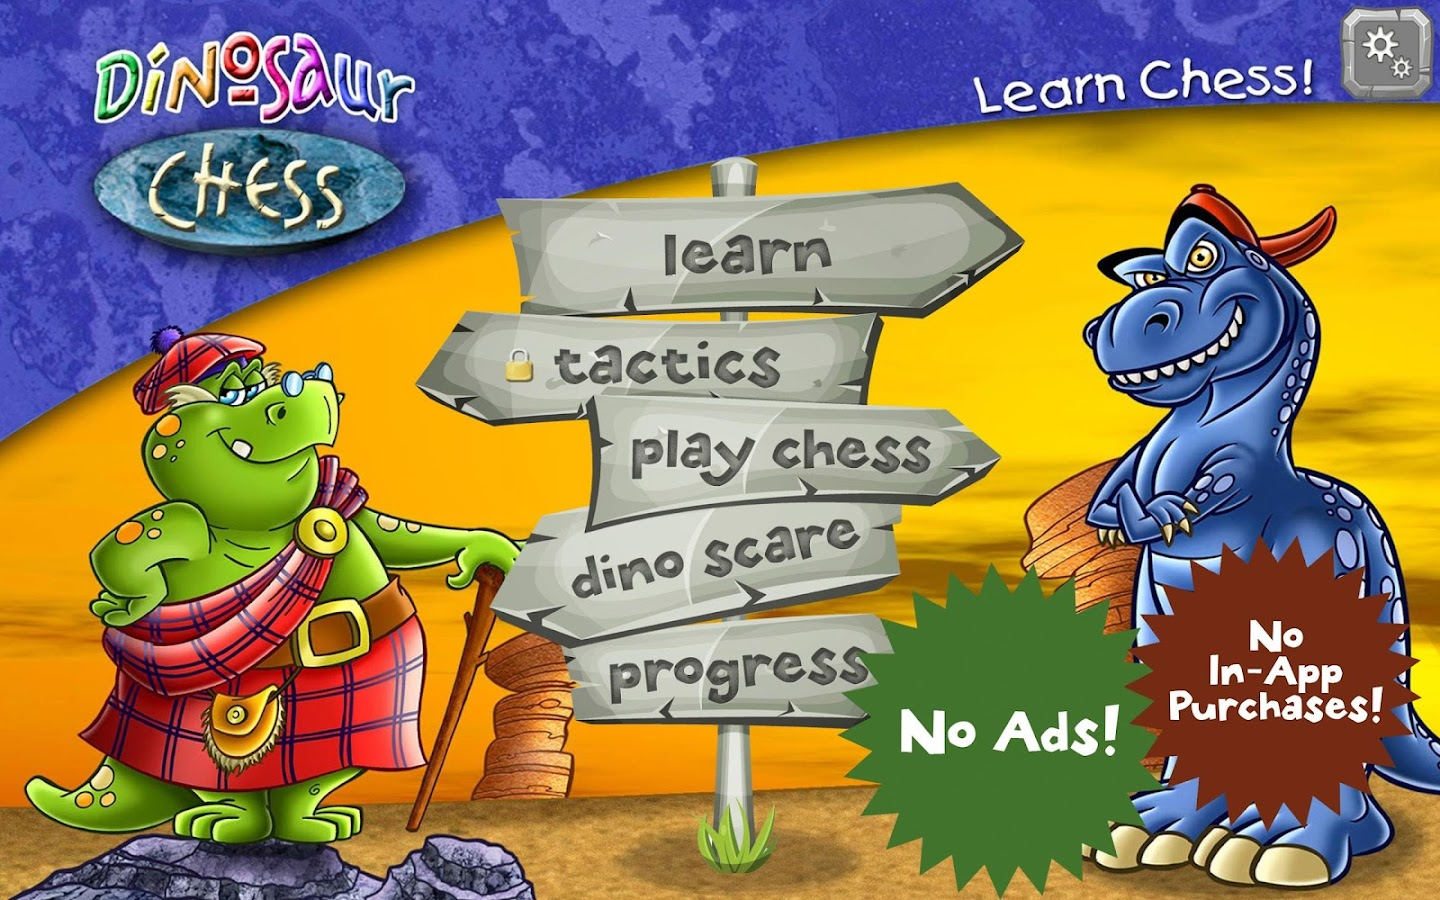 Dinosaur Chess: Learn to Play! Screenshot 5